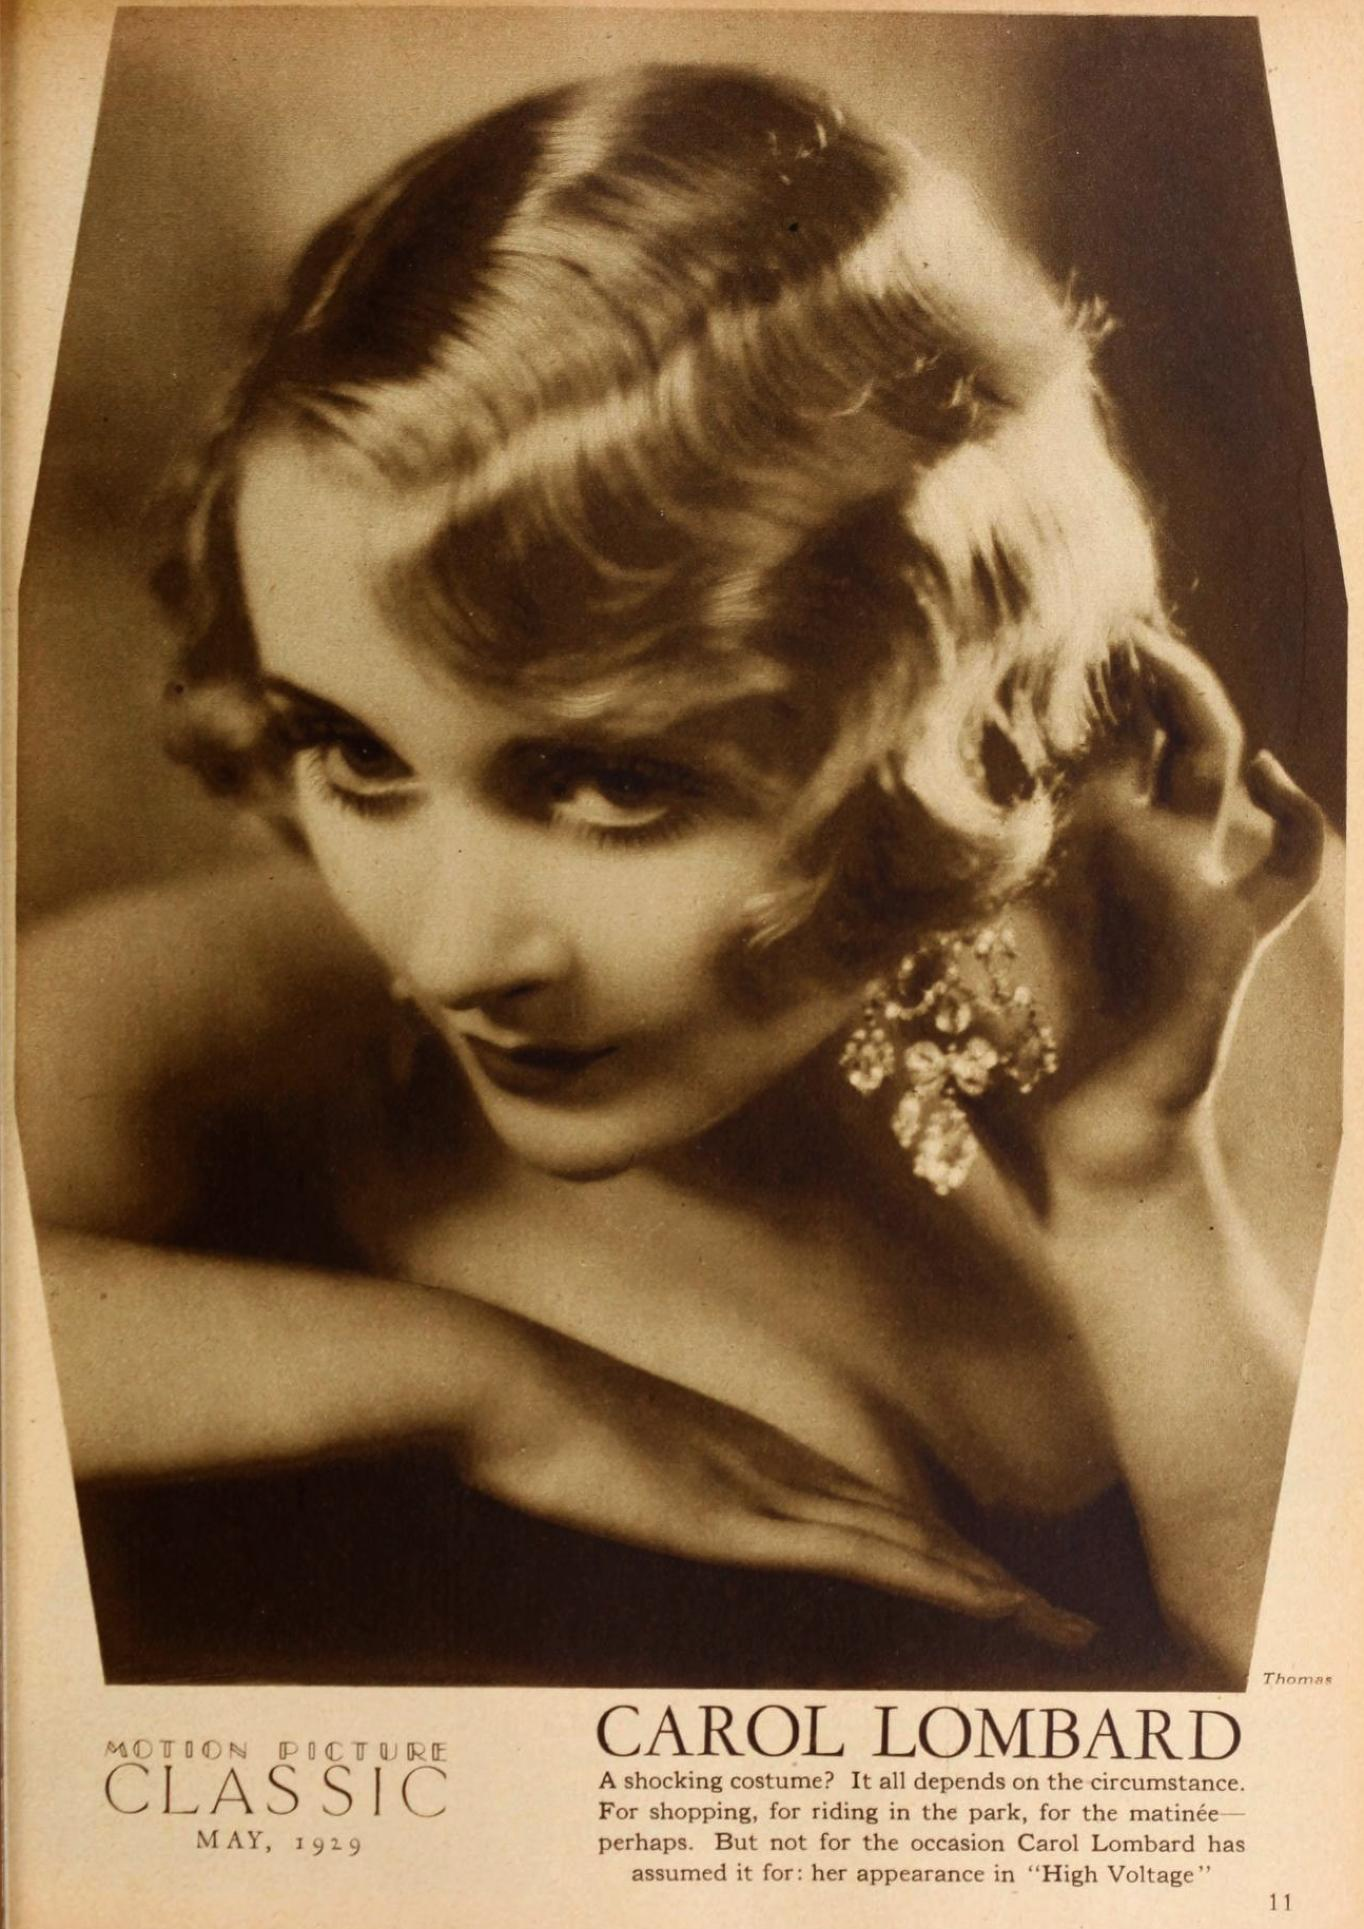 carole lombard motion picture classic may 1929a